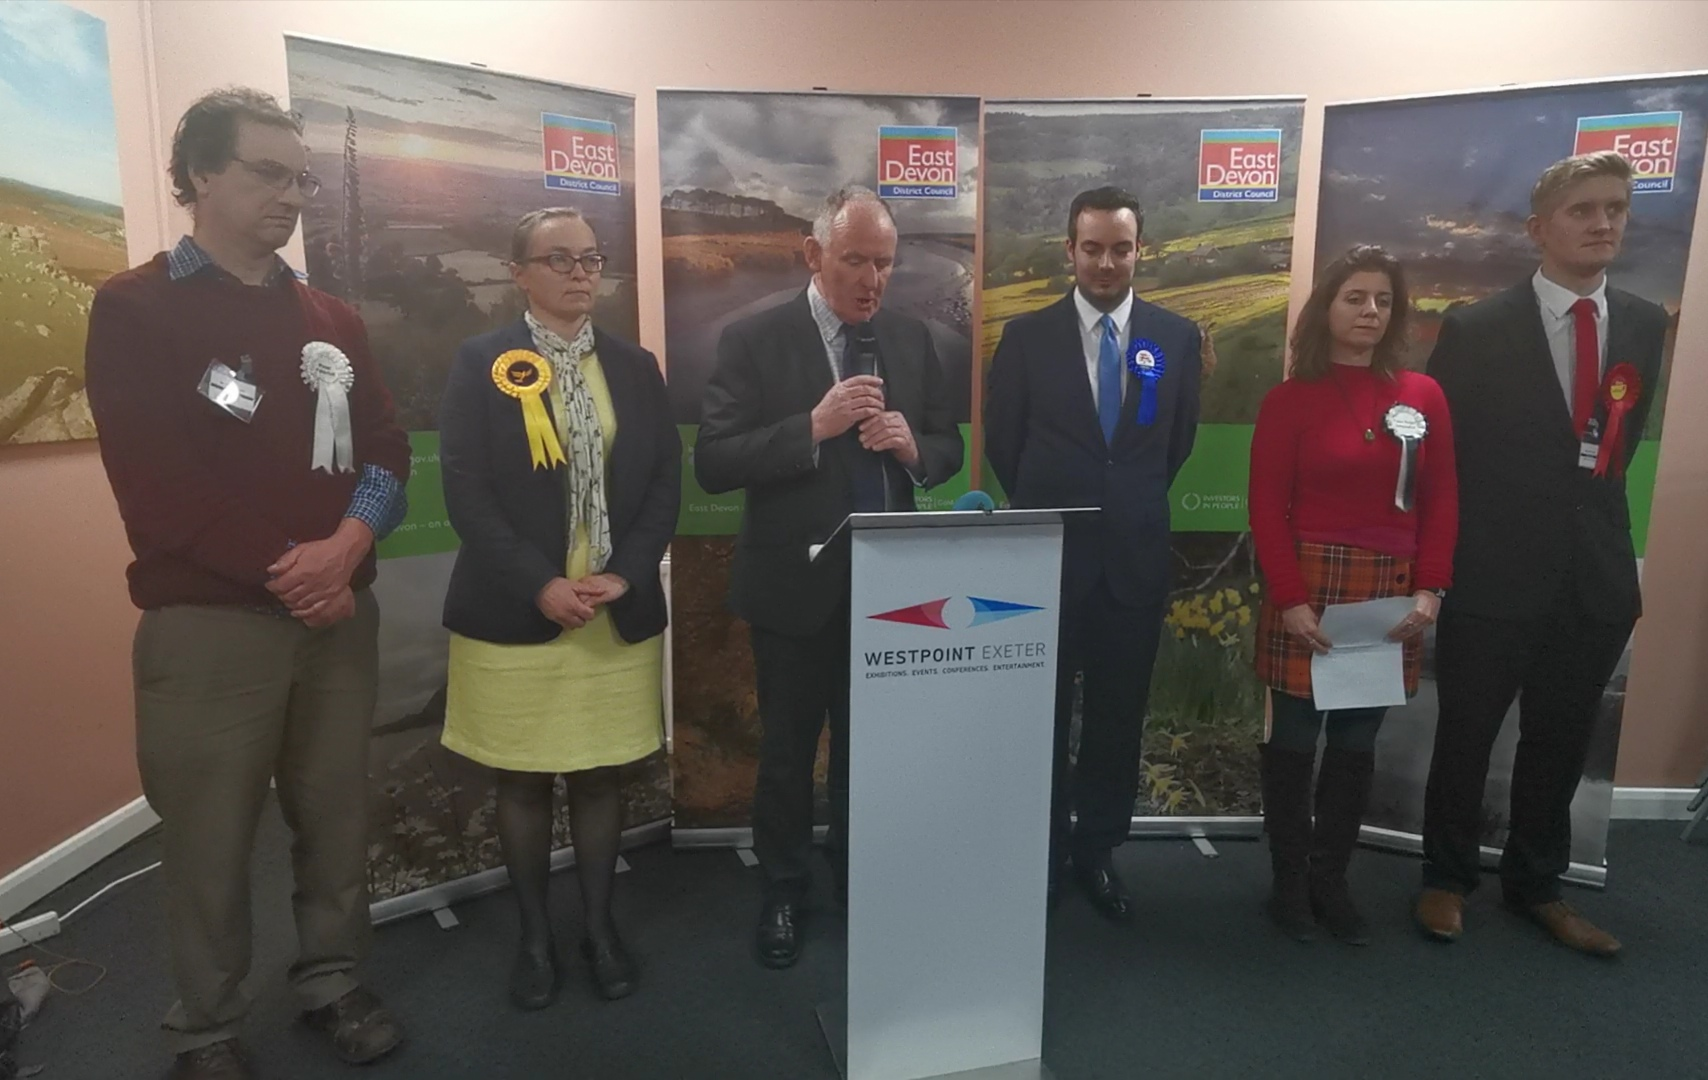 Conservative elected as MP for East Devon